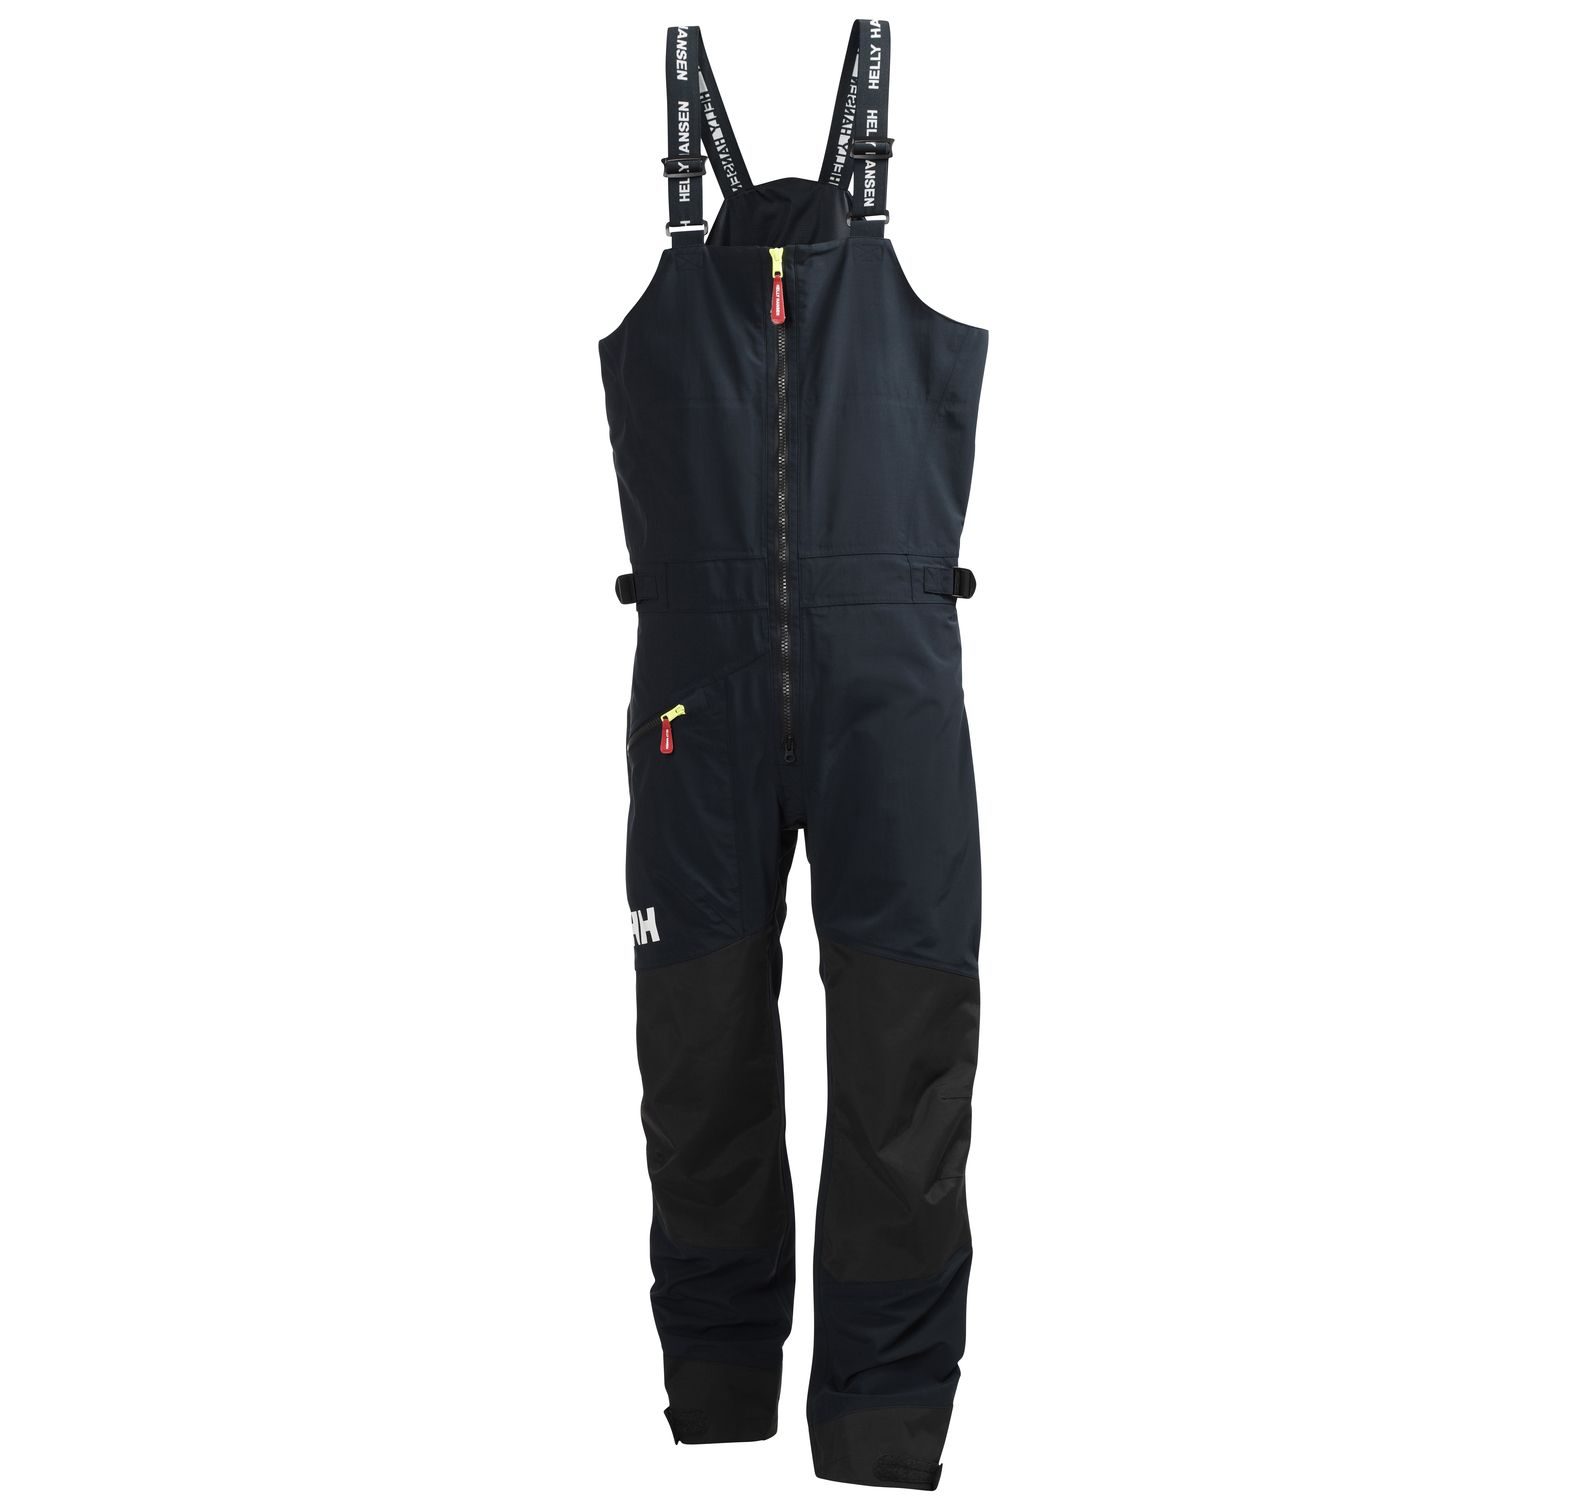 offshore race trouser, navy, l, regnbyxor